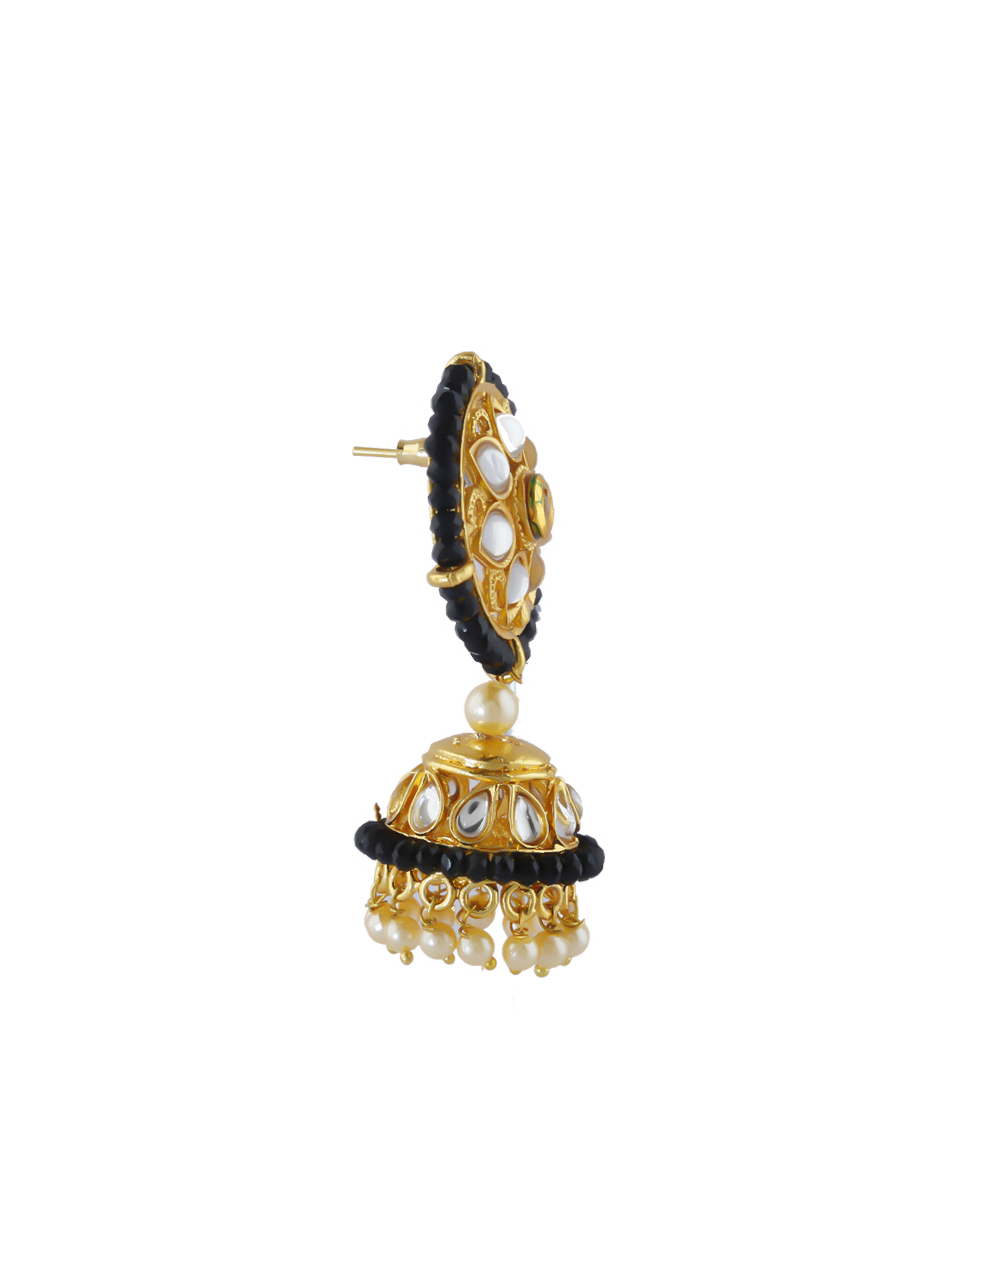 Black Colour Gold Finish Styled With Pearls Beads Zumki Earrings